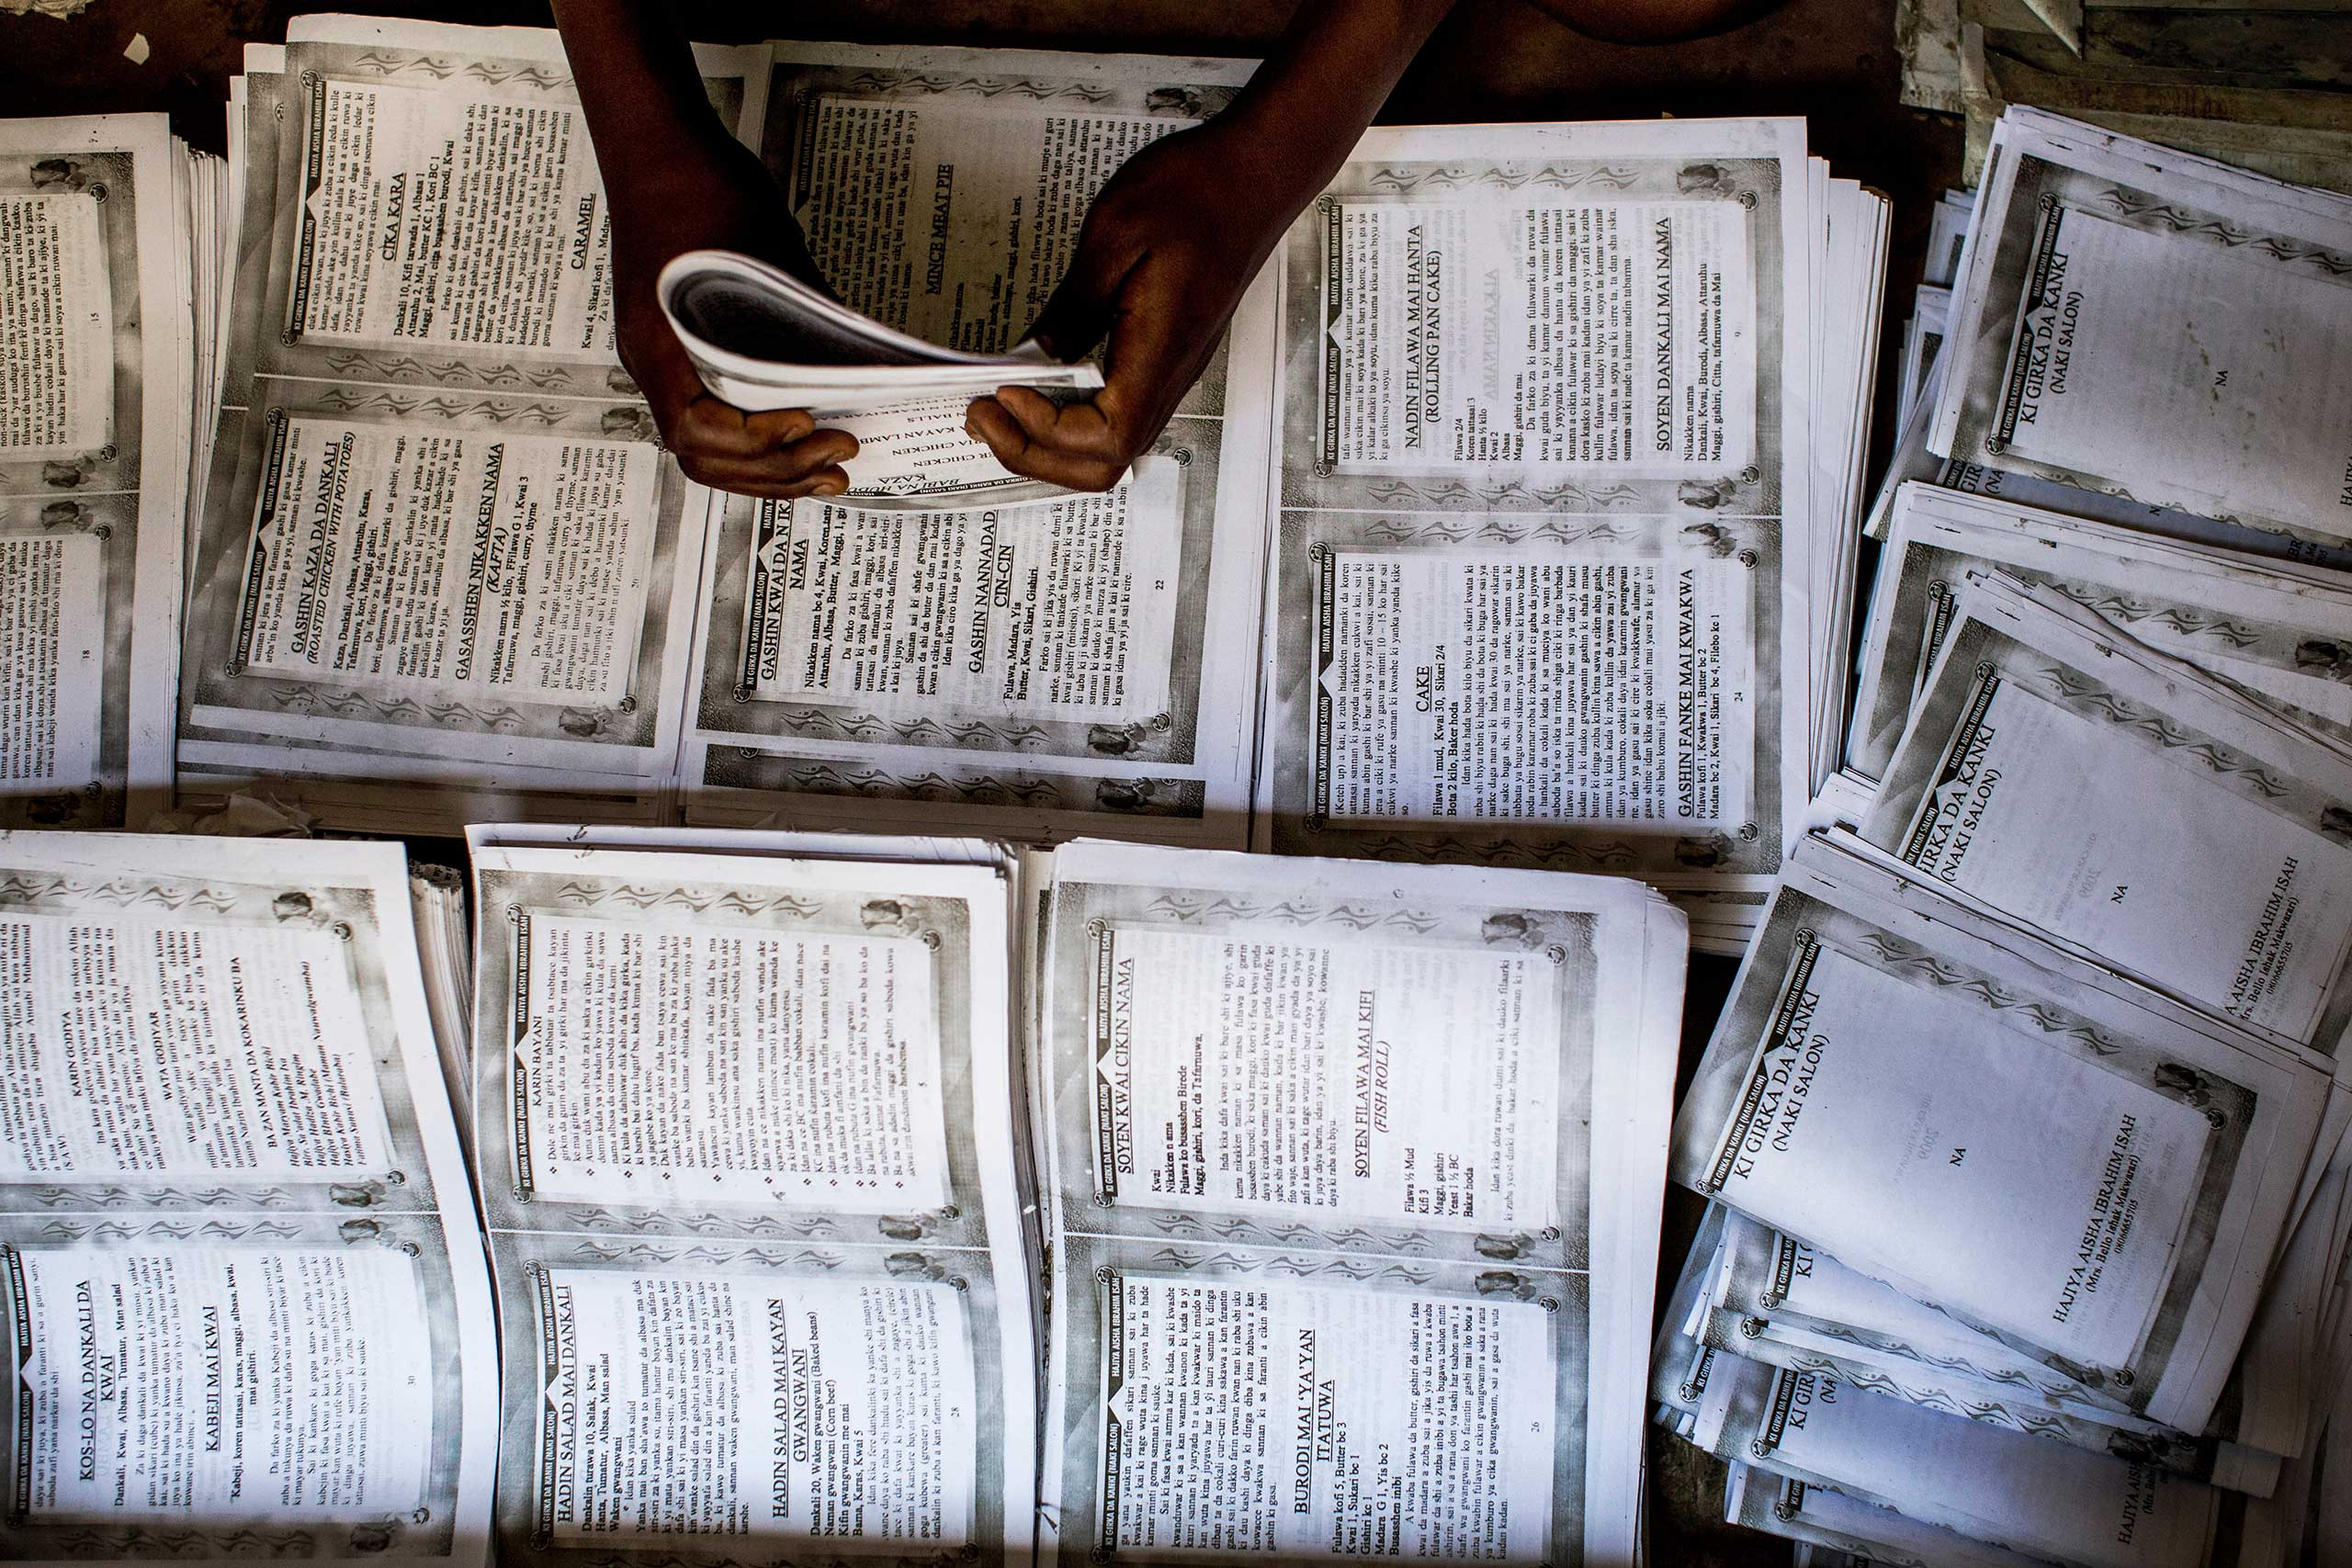 Novels and other books are put together by hand in Kano, Northern Nigeria, April 8, 2013.